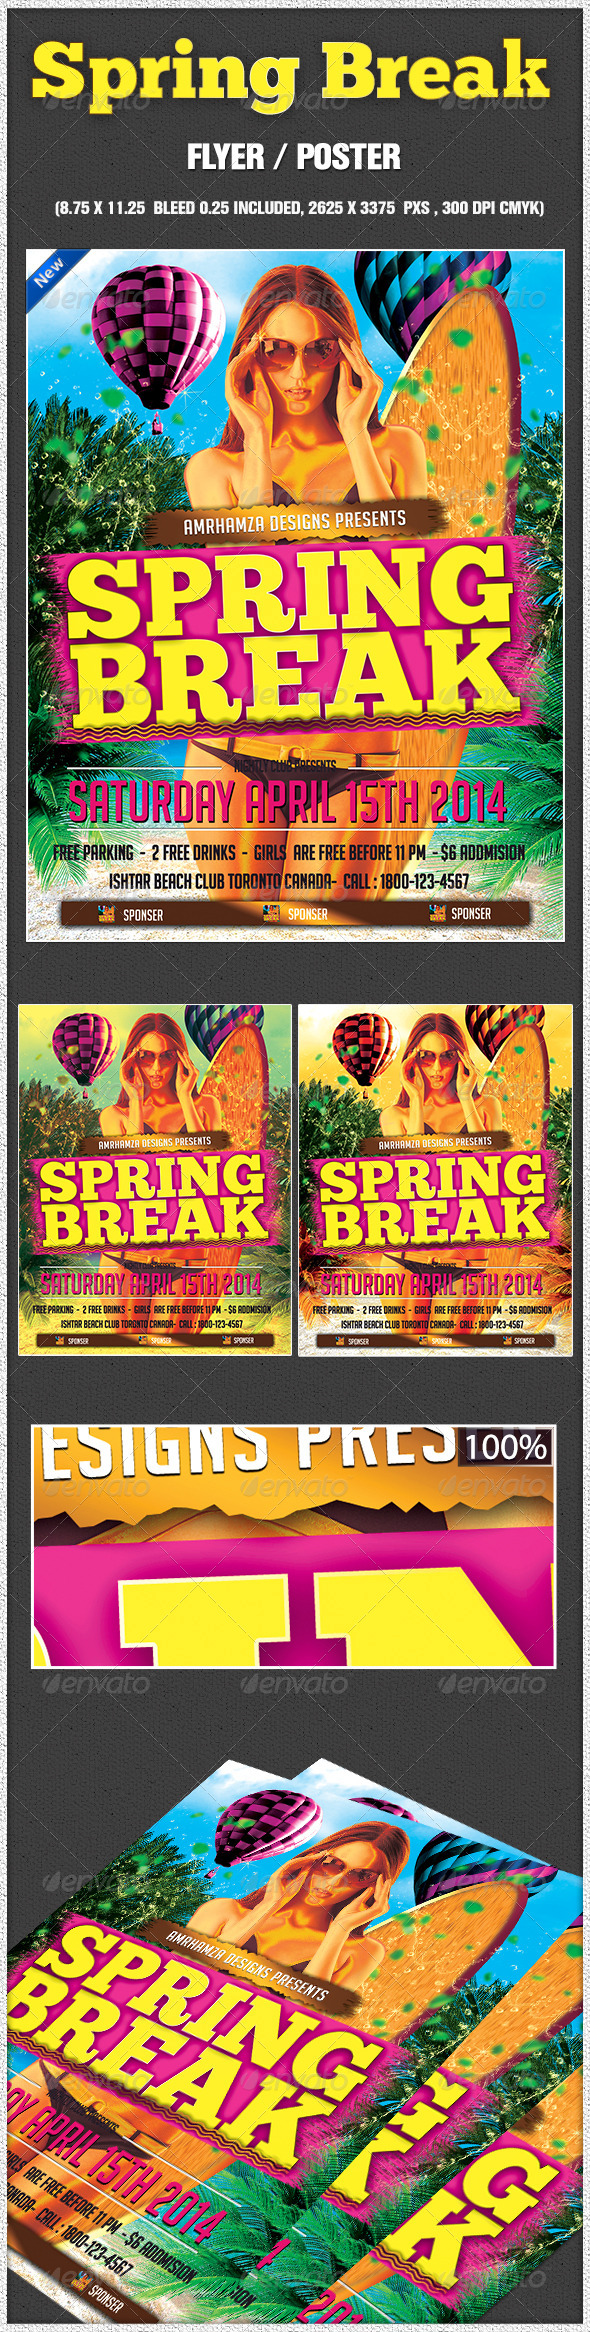 Spring Break Surf Beach Club Party Event - Holidays Events